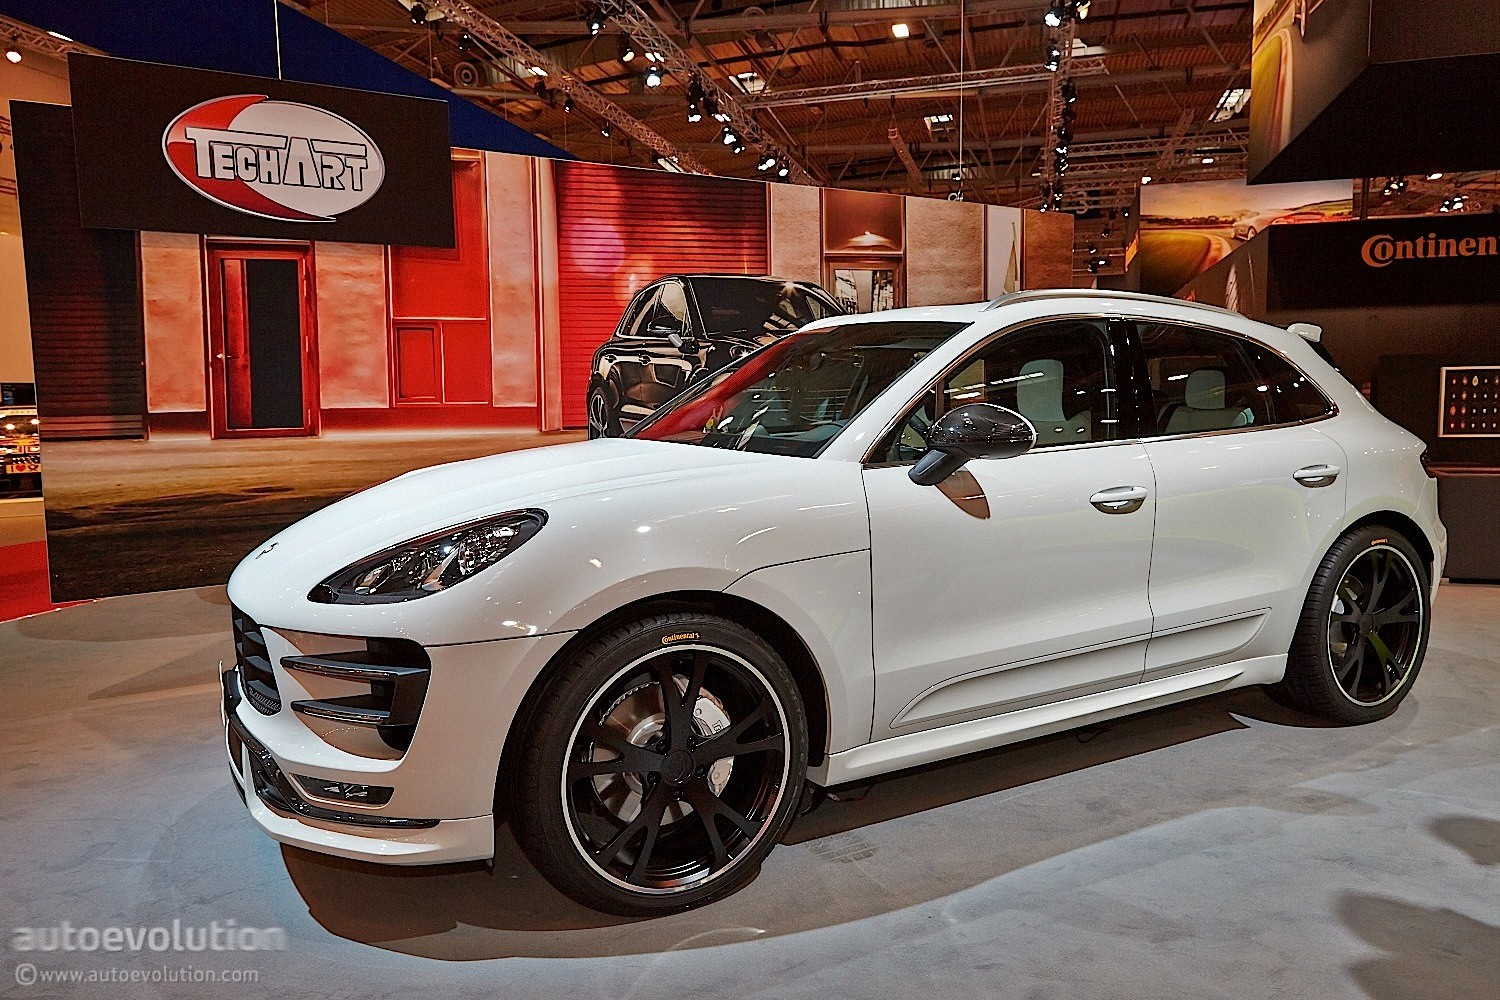 techart porsche macan turbo feels lavish at essen 2014 live photos autoevolution. Black Bedroom Furniture Sets. Home Design Ideas